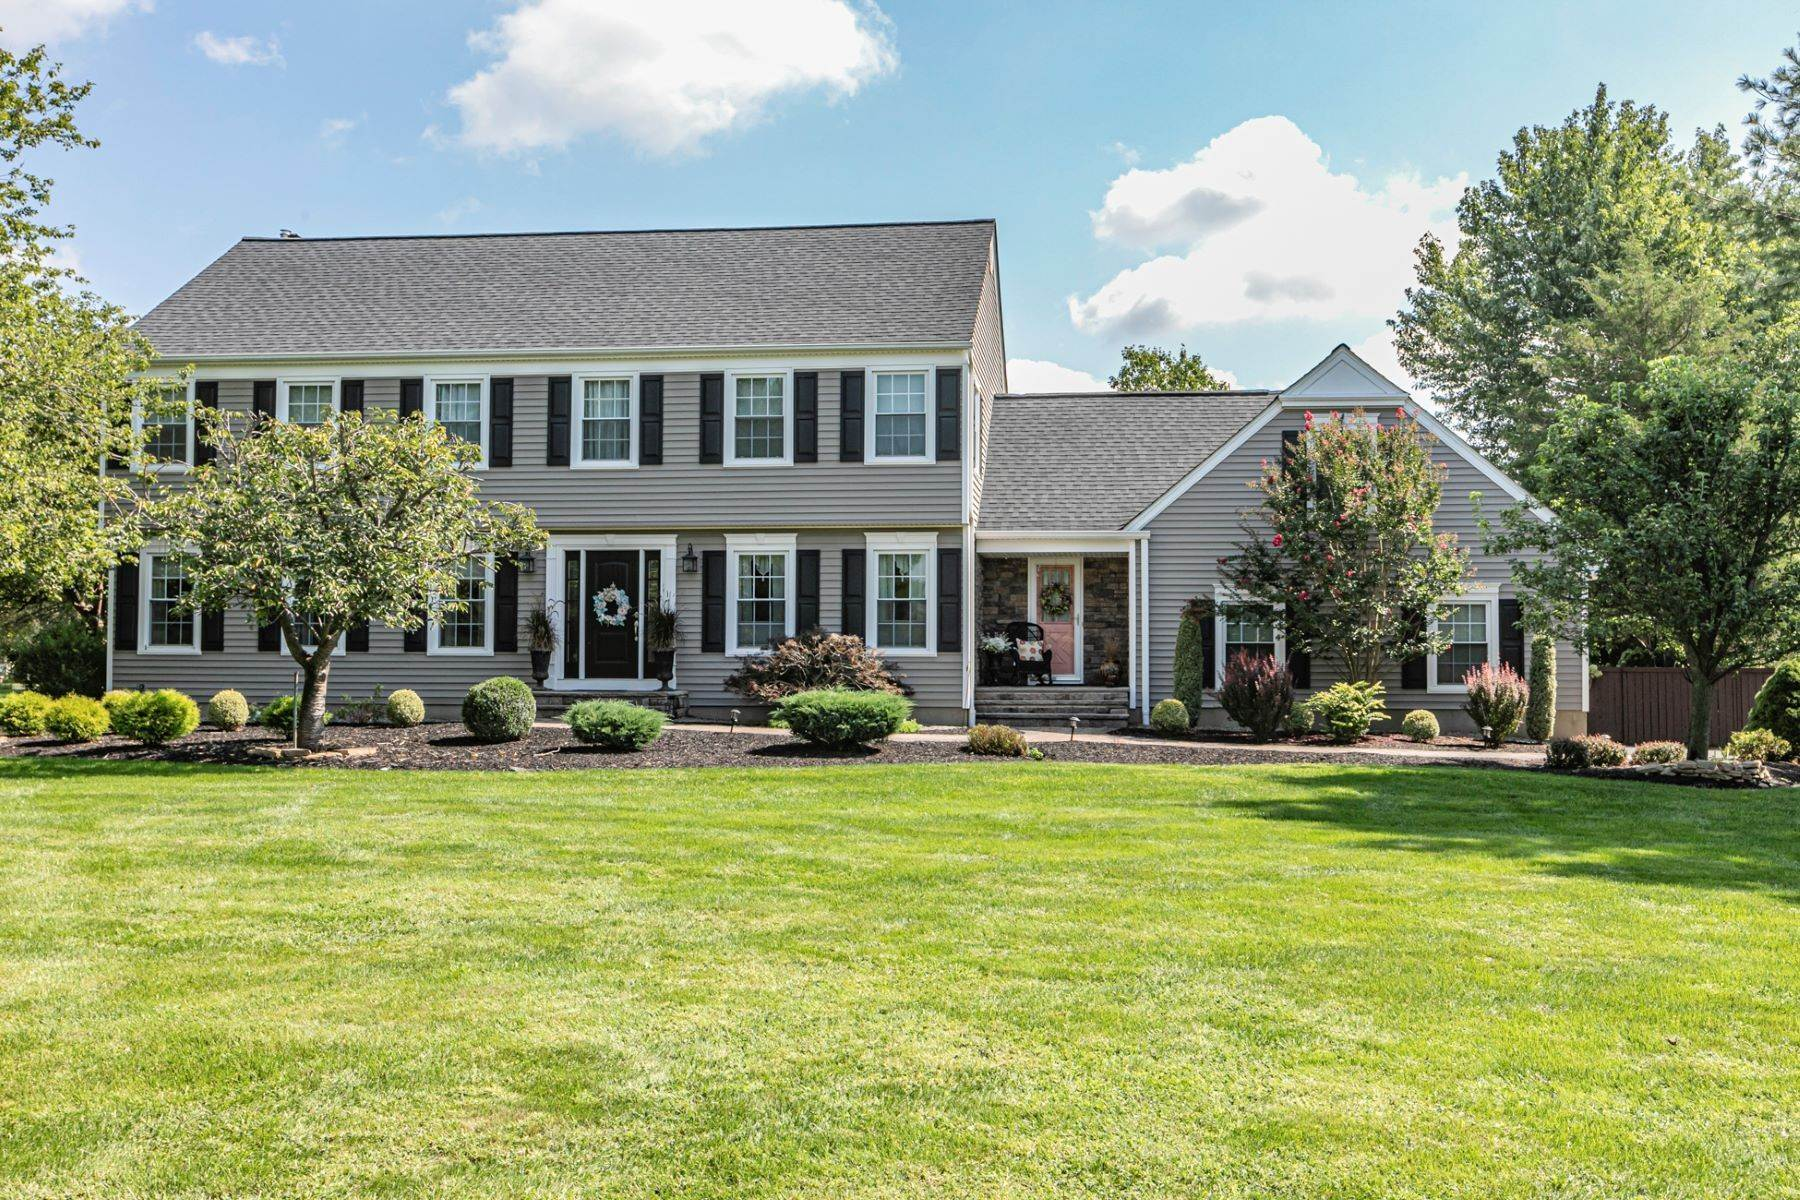 Single Family Homes for Sale at Life Doesn't Get Much Better! 20 Dehart Drive, Belle Mead, New Jersey 08502 United States